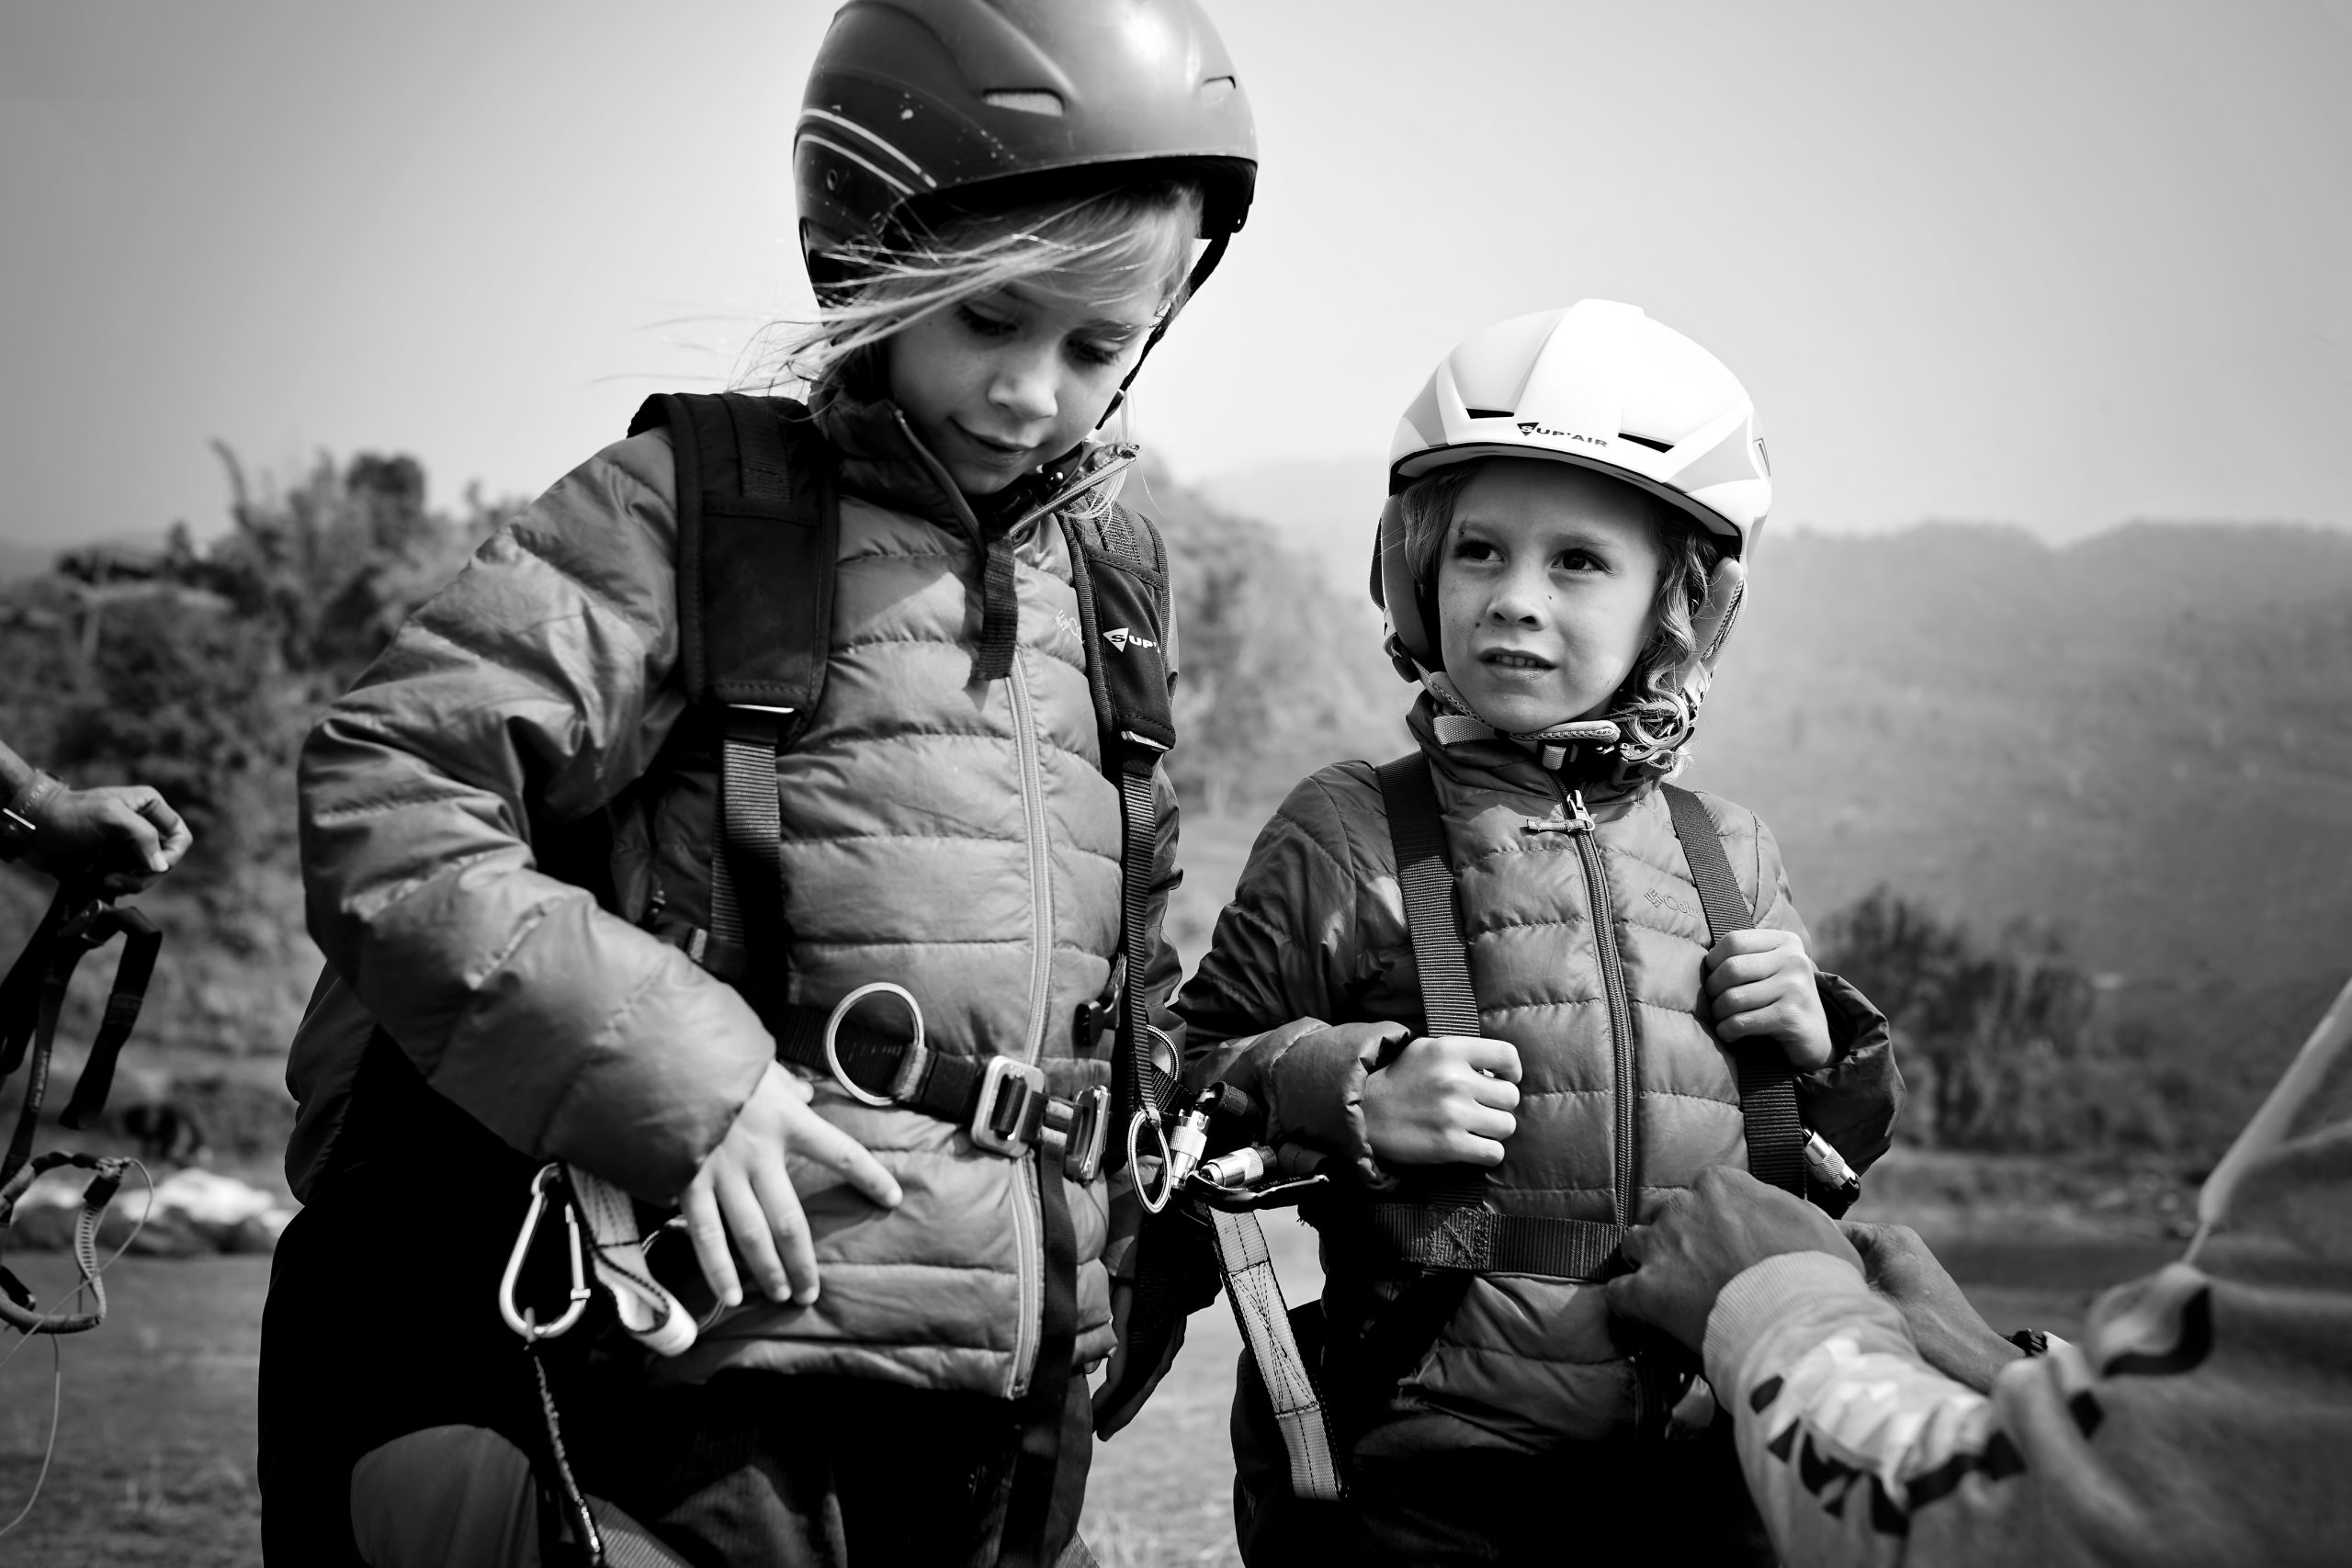 Young boy and girl tightening safety harnesses